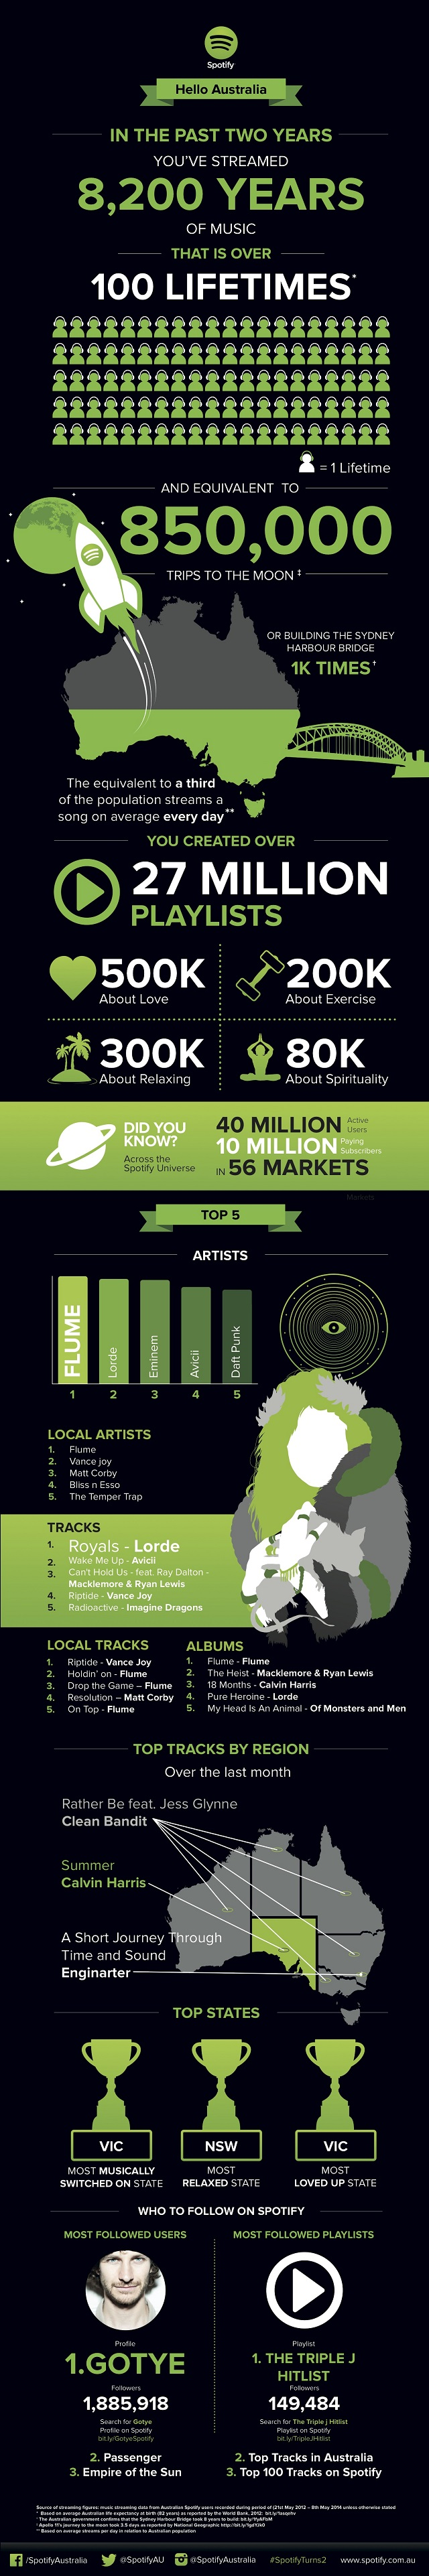 Spotify-Aus-Infographic